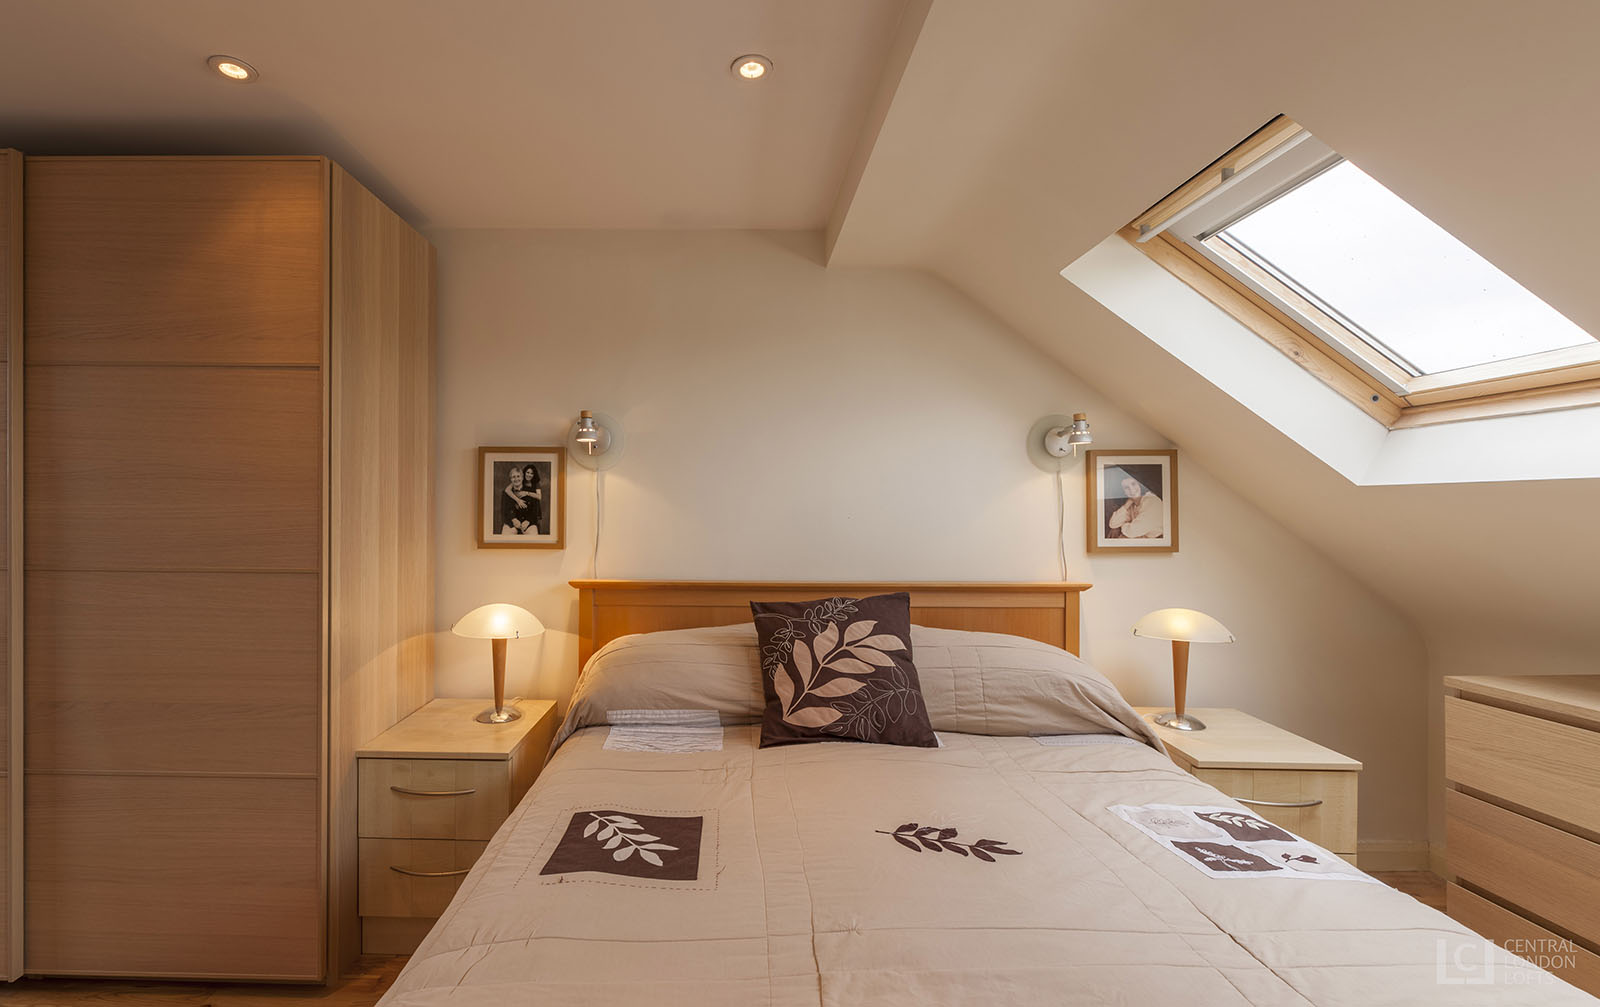 Ruislip Loft Conversion Services Lofts